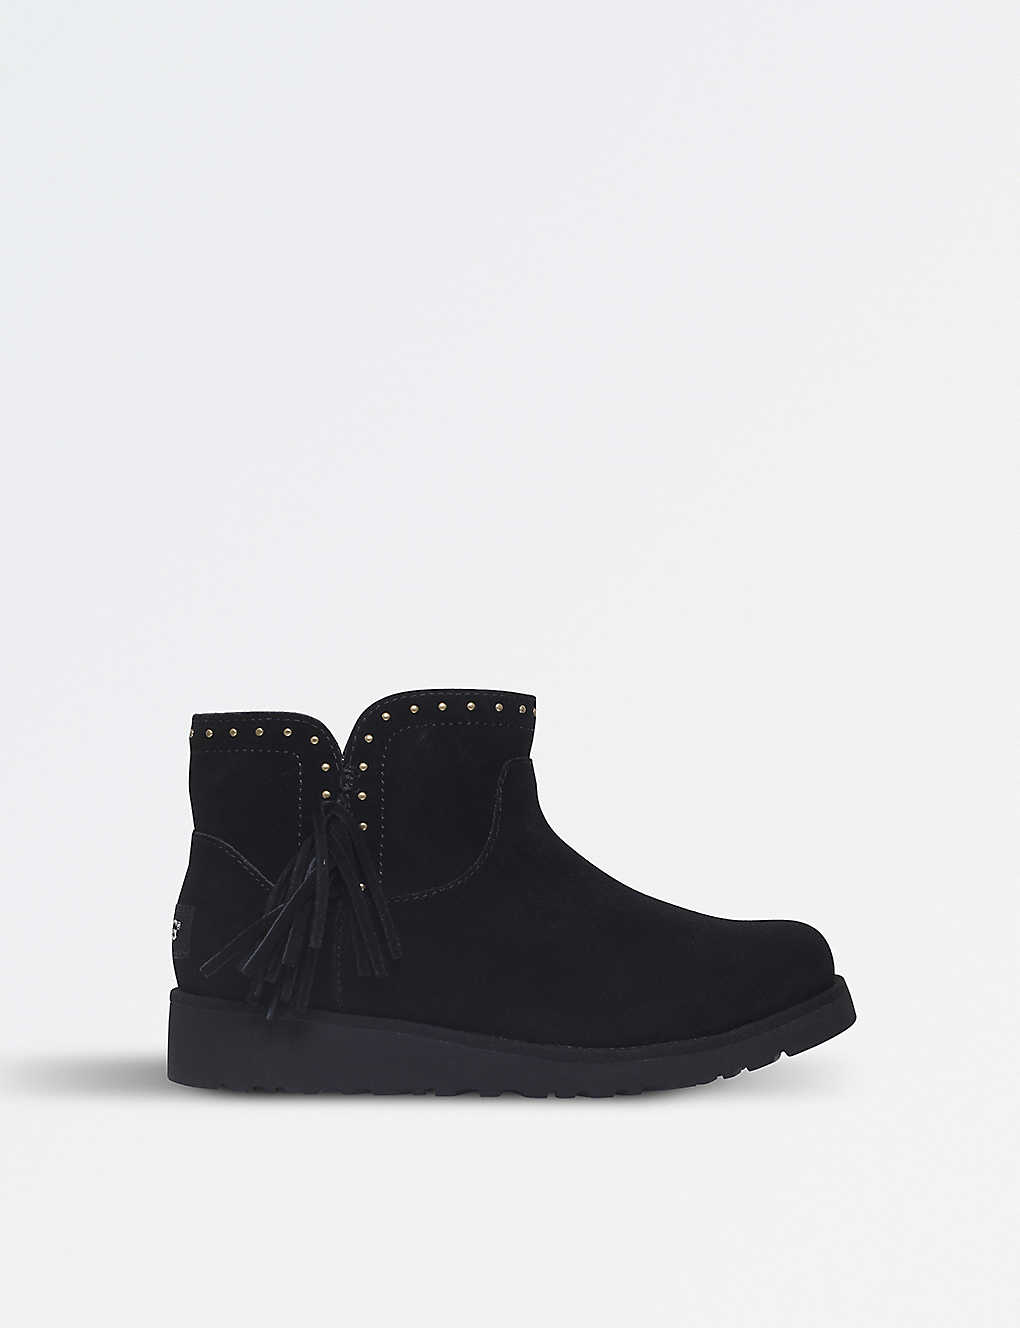 08c05e475 UGG Cindy sheepskin boots. Currently unavailable. This product ...